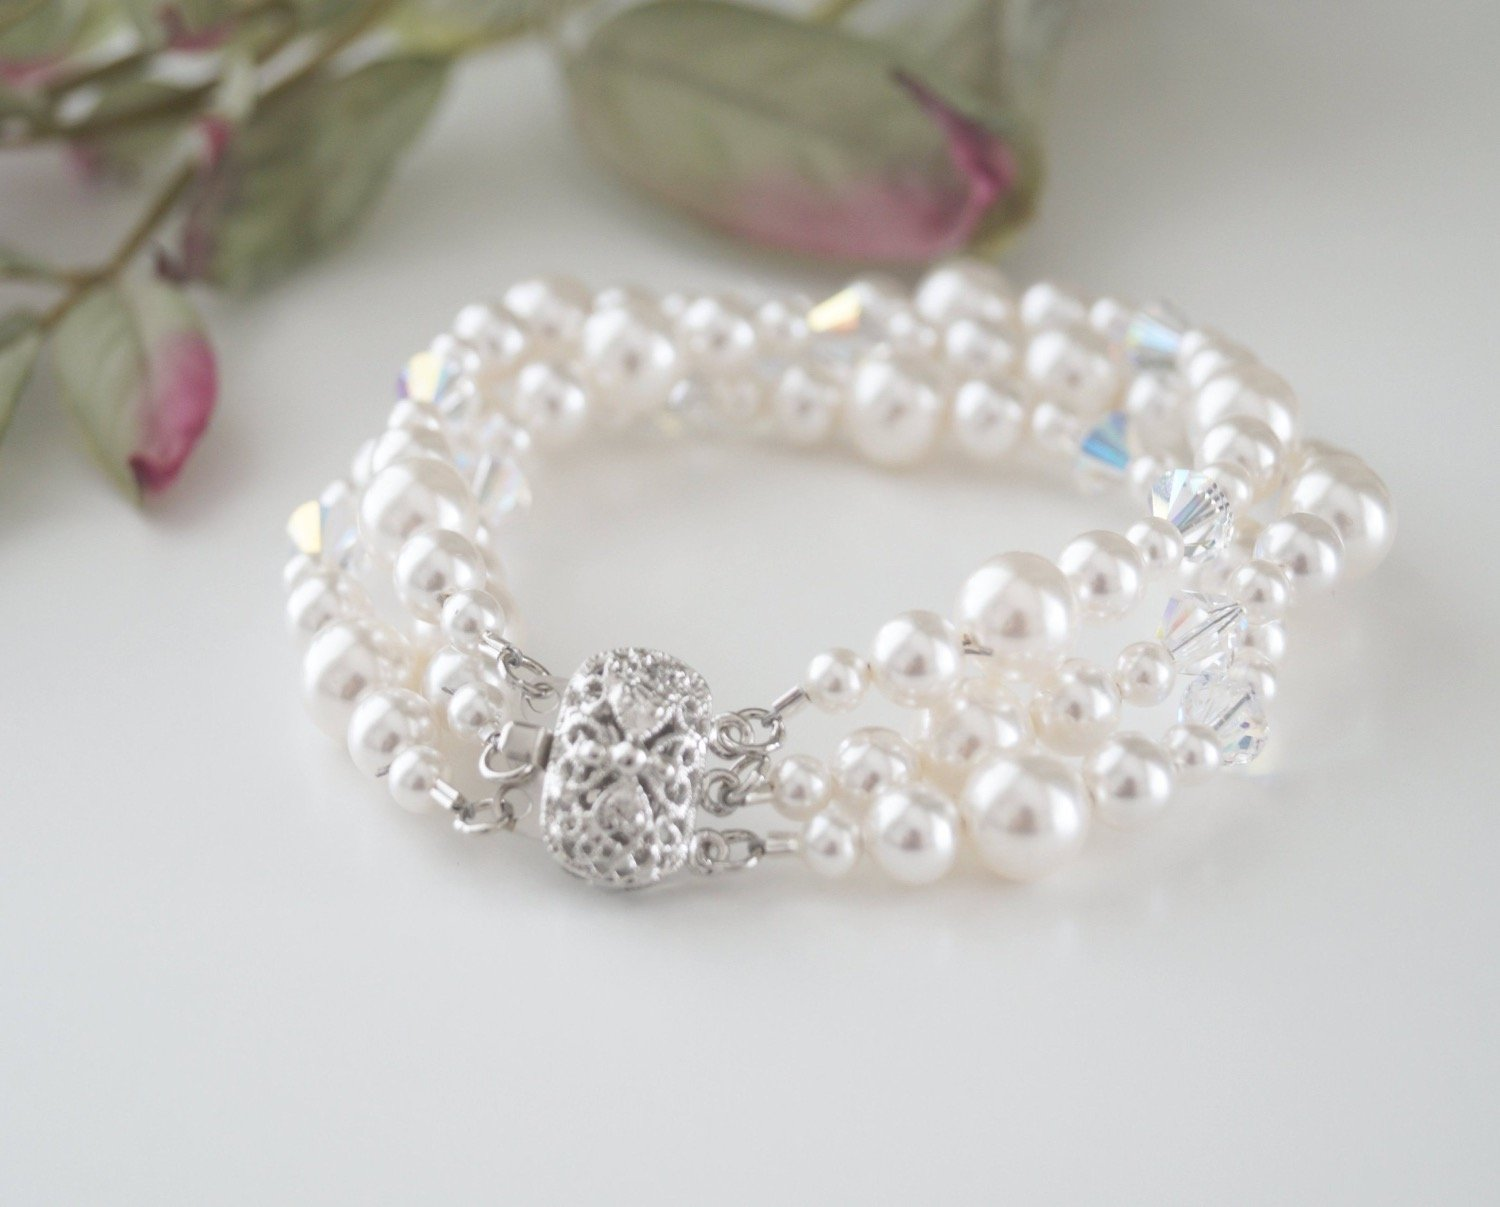 bridal jewelry pearl and crystal bracelet - Clairesbridal - 1